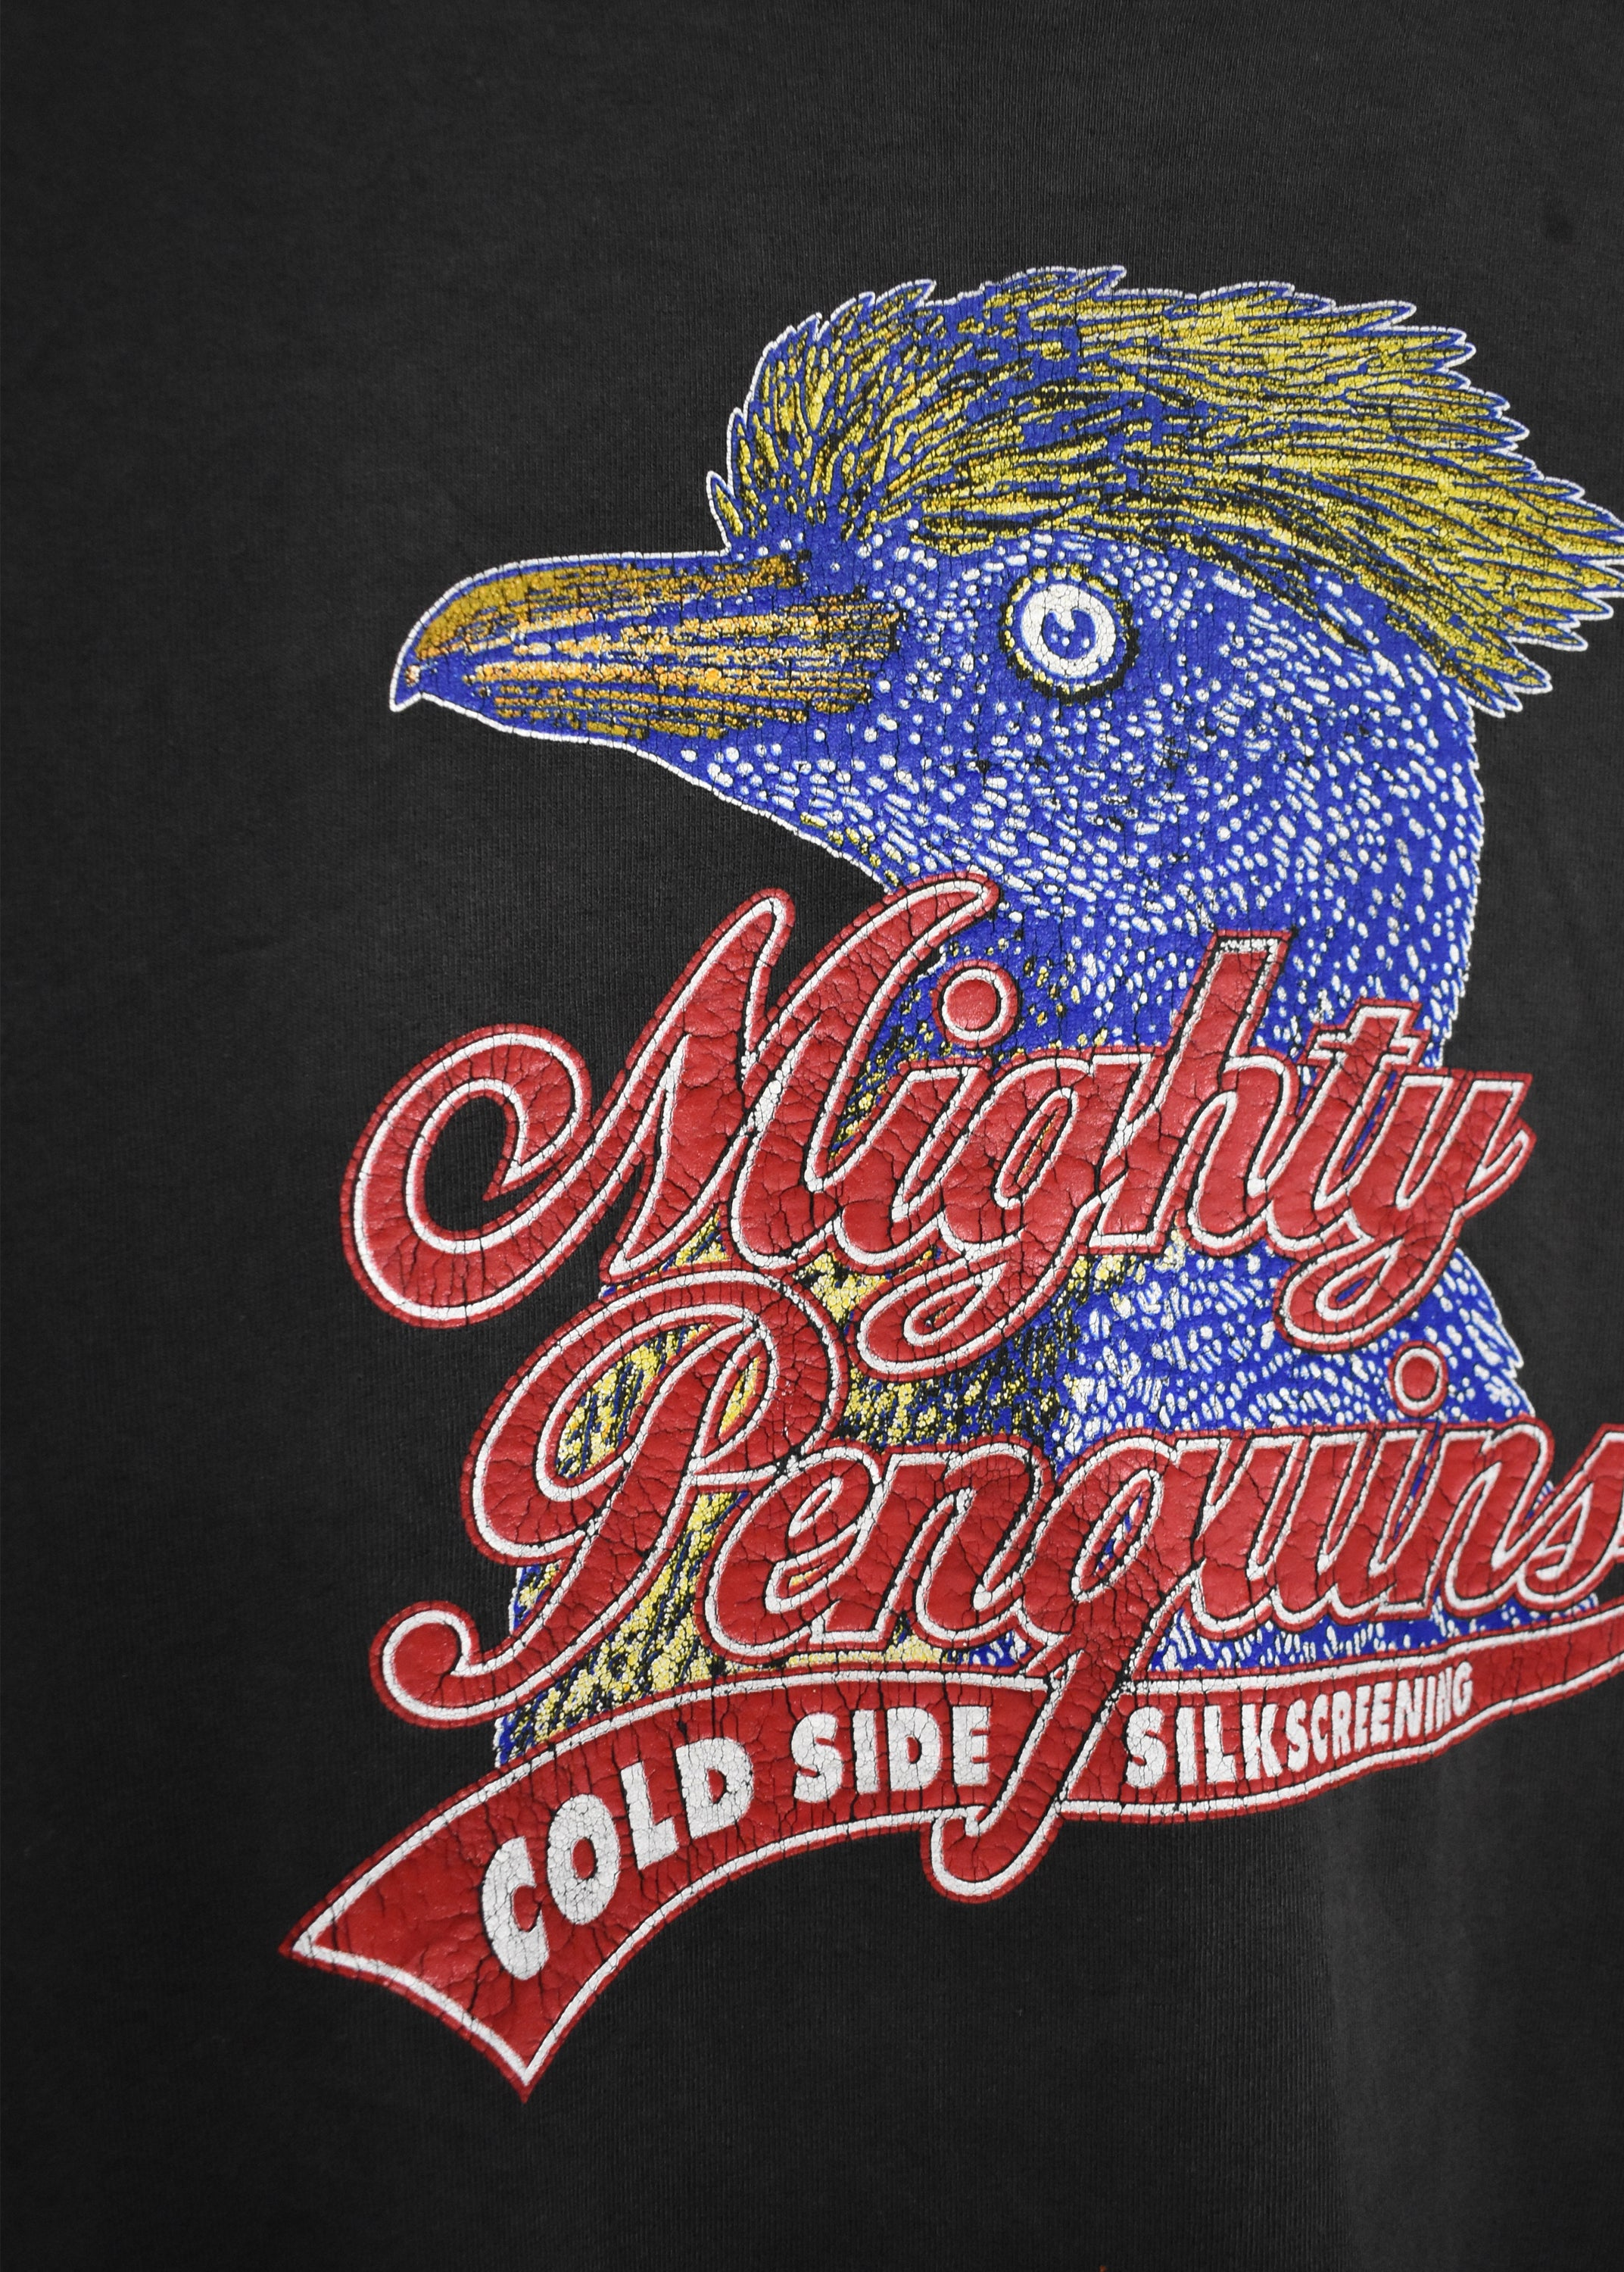 2003 THE ROLLING STONES 'OUR 2002/03' VINTAGE TEE